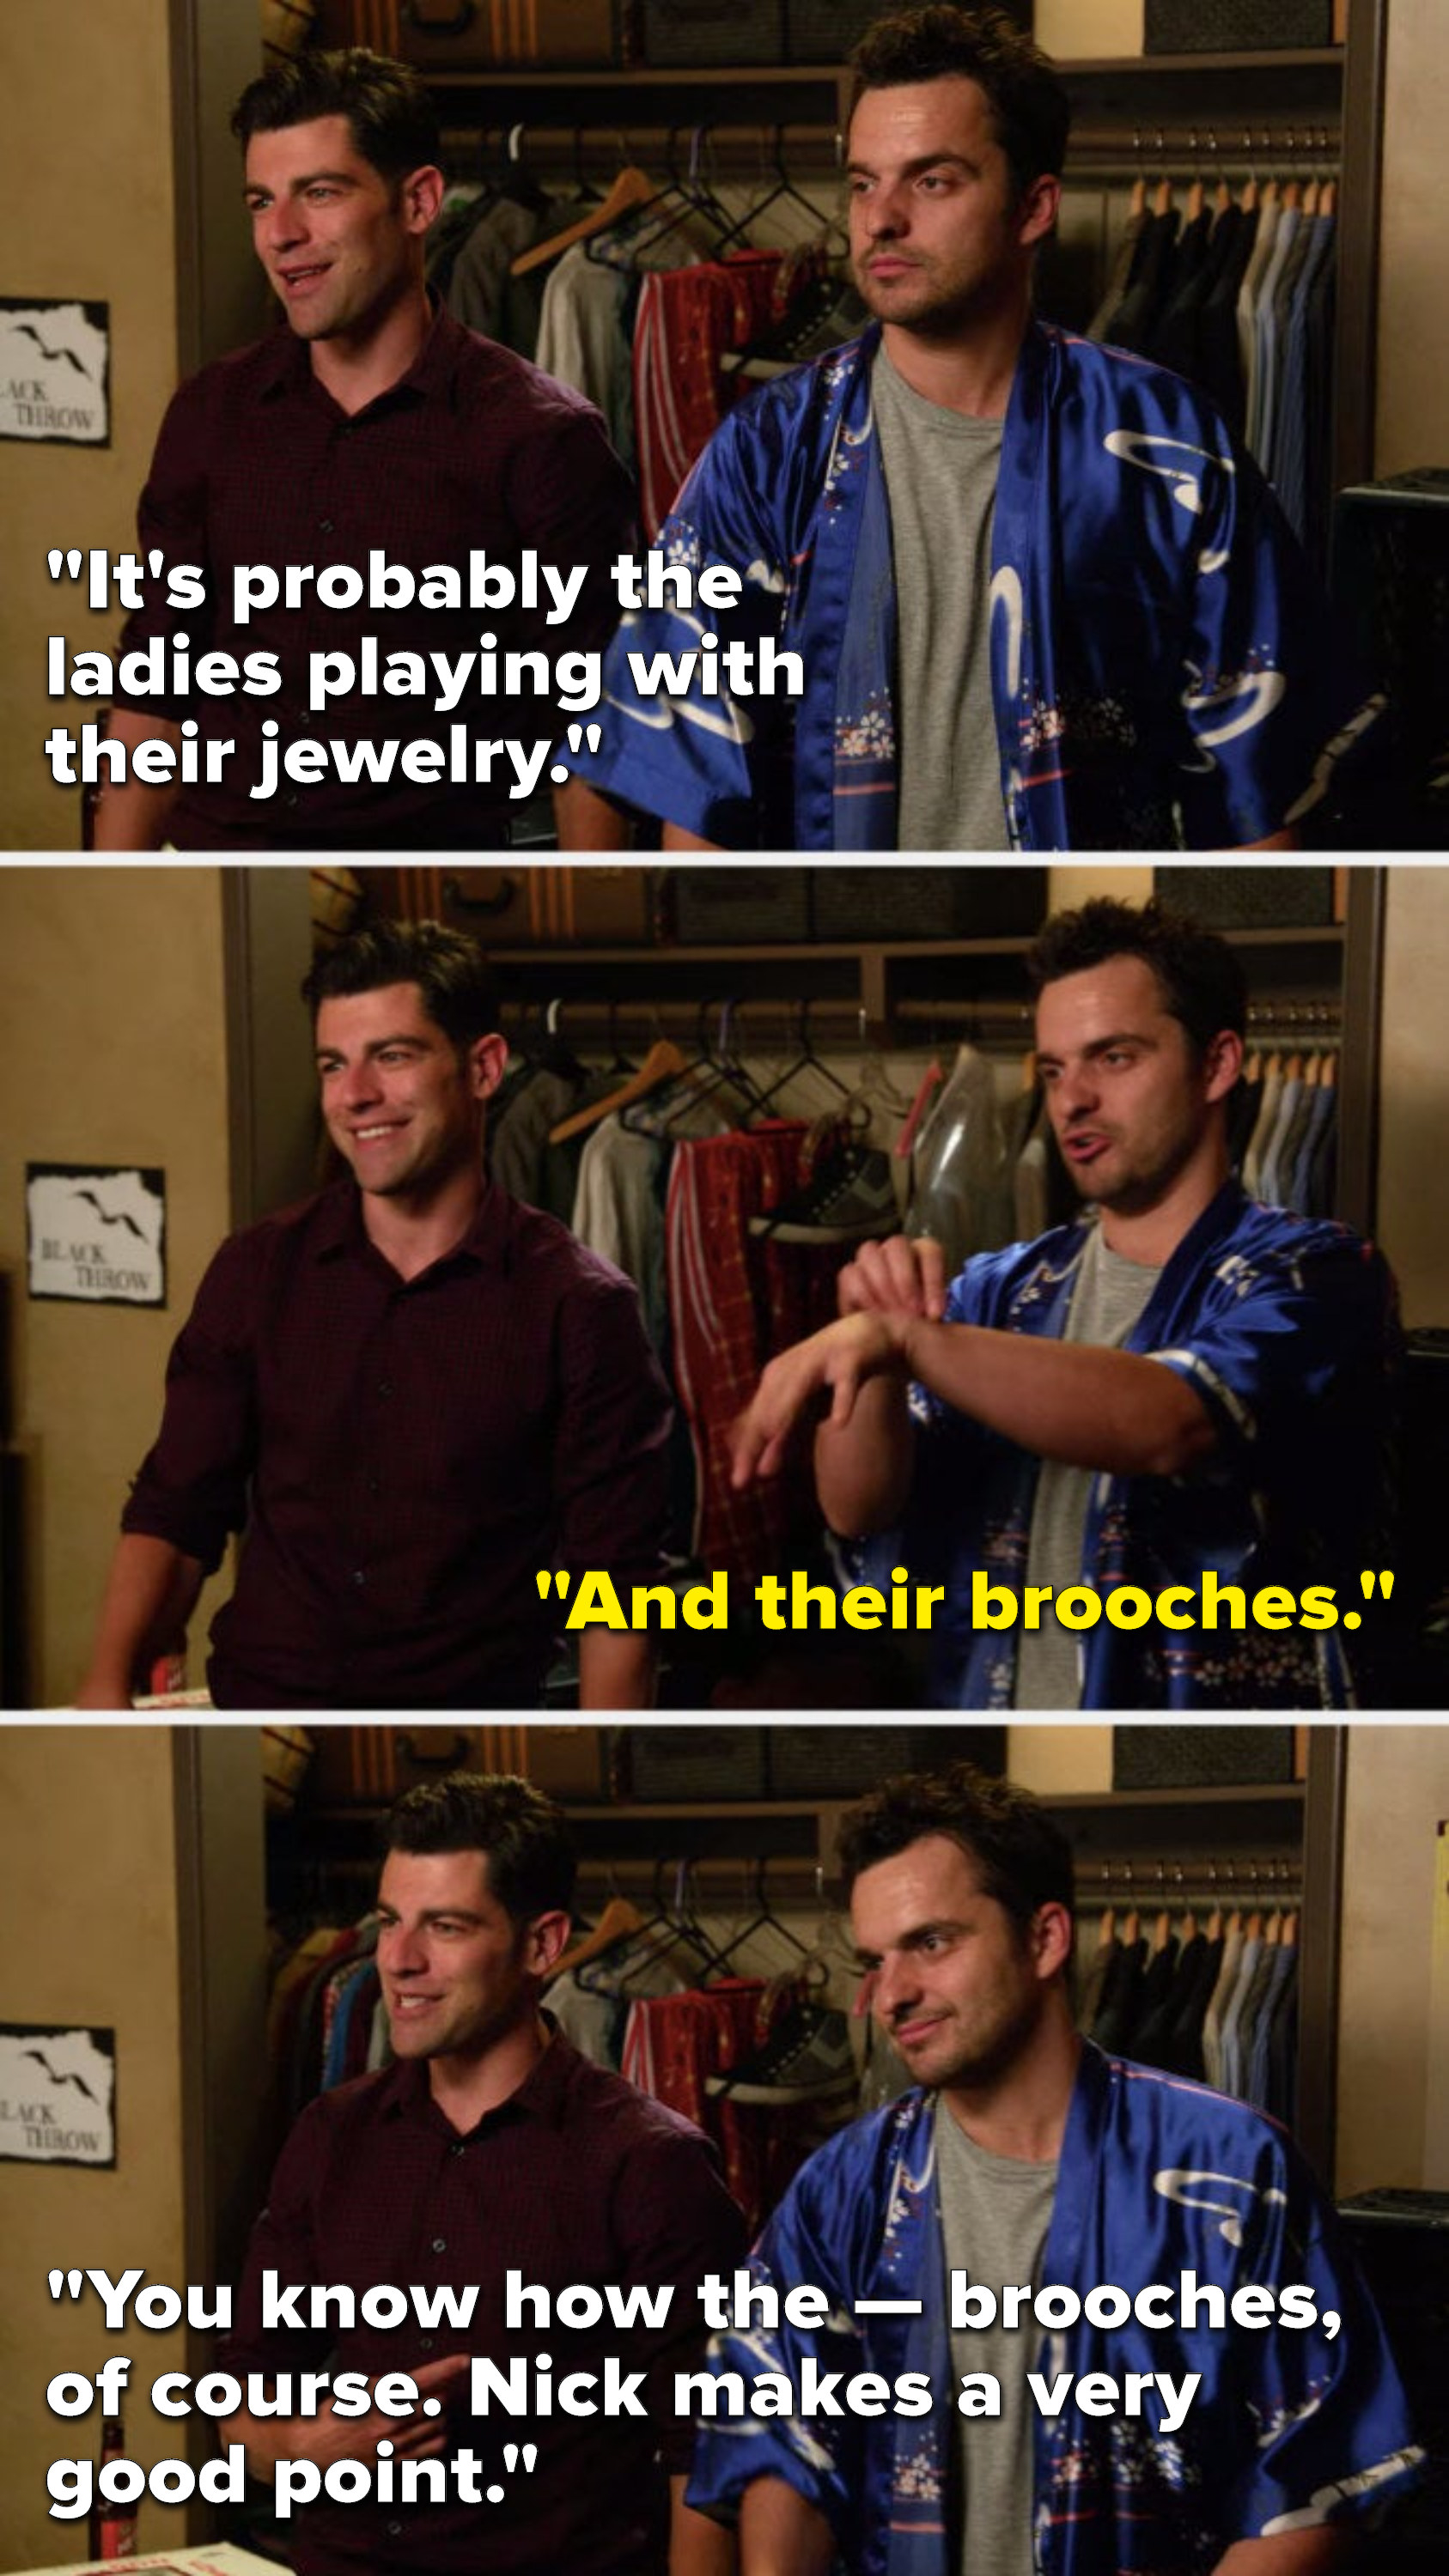 """Schmidt says, """"It's probably the ladies playing with their jewelry,"""" Nick says, """"And their brooches,"""" and Schmidt says, """"You know how the — brooches, of course, Nick makes a very good point"""""""